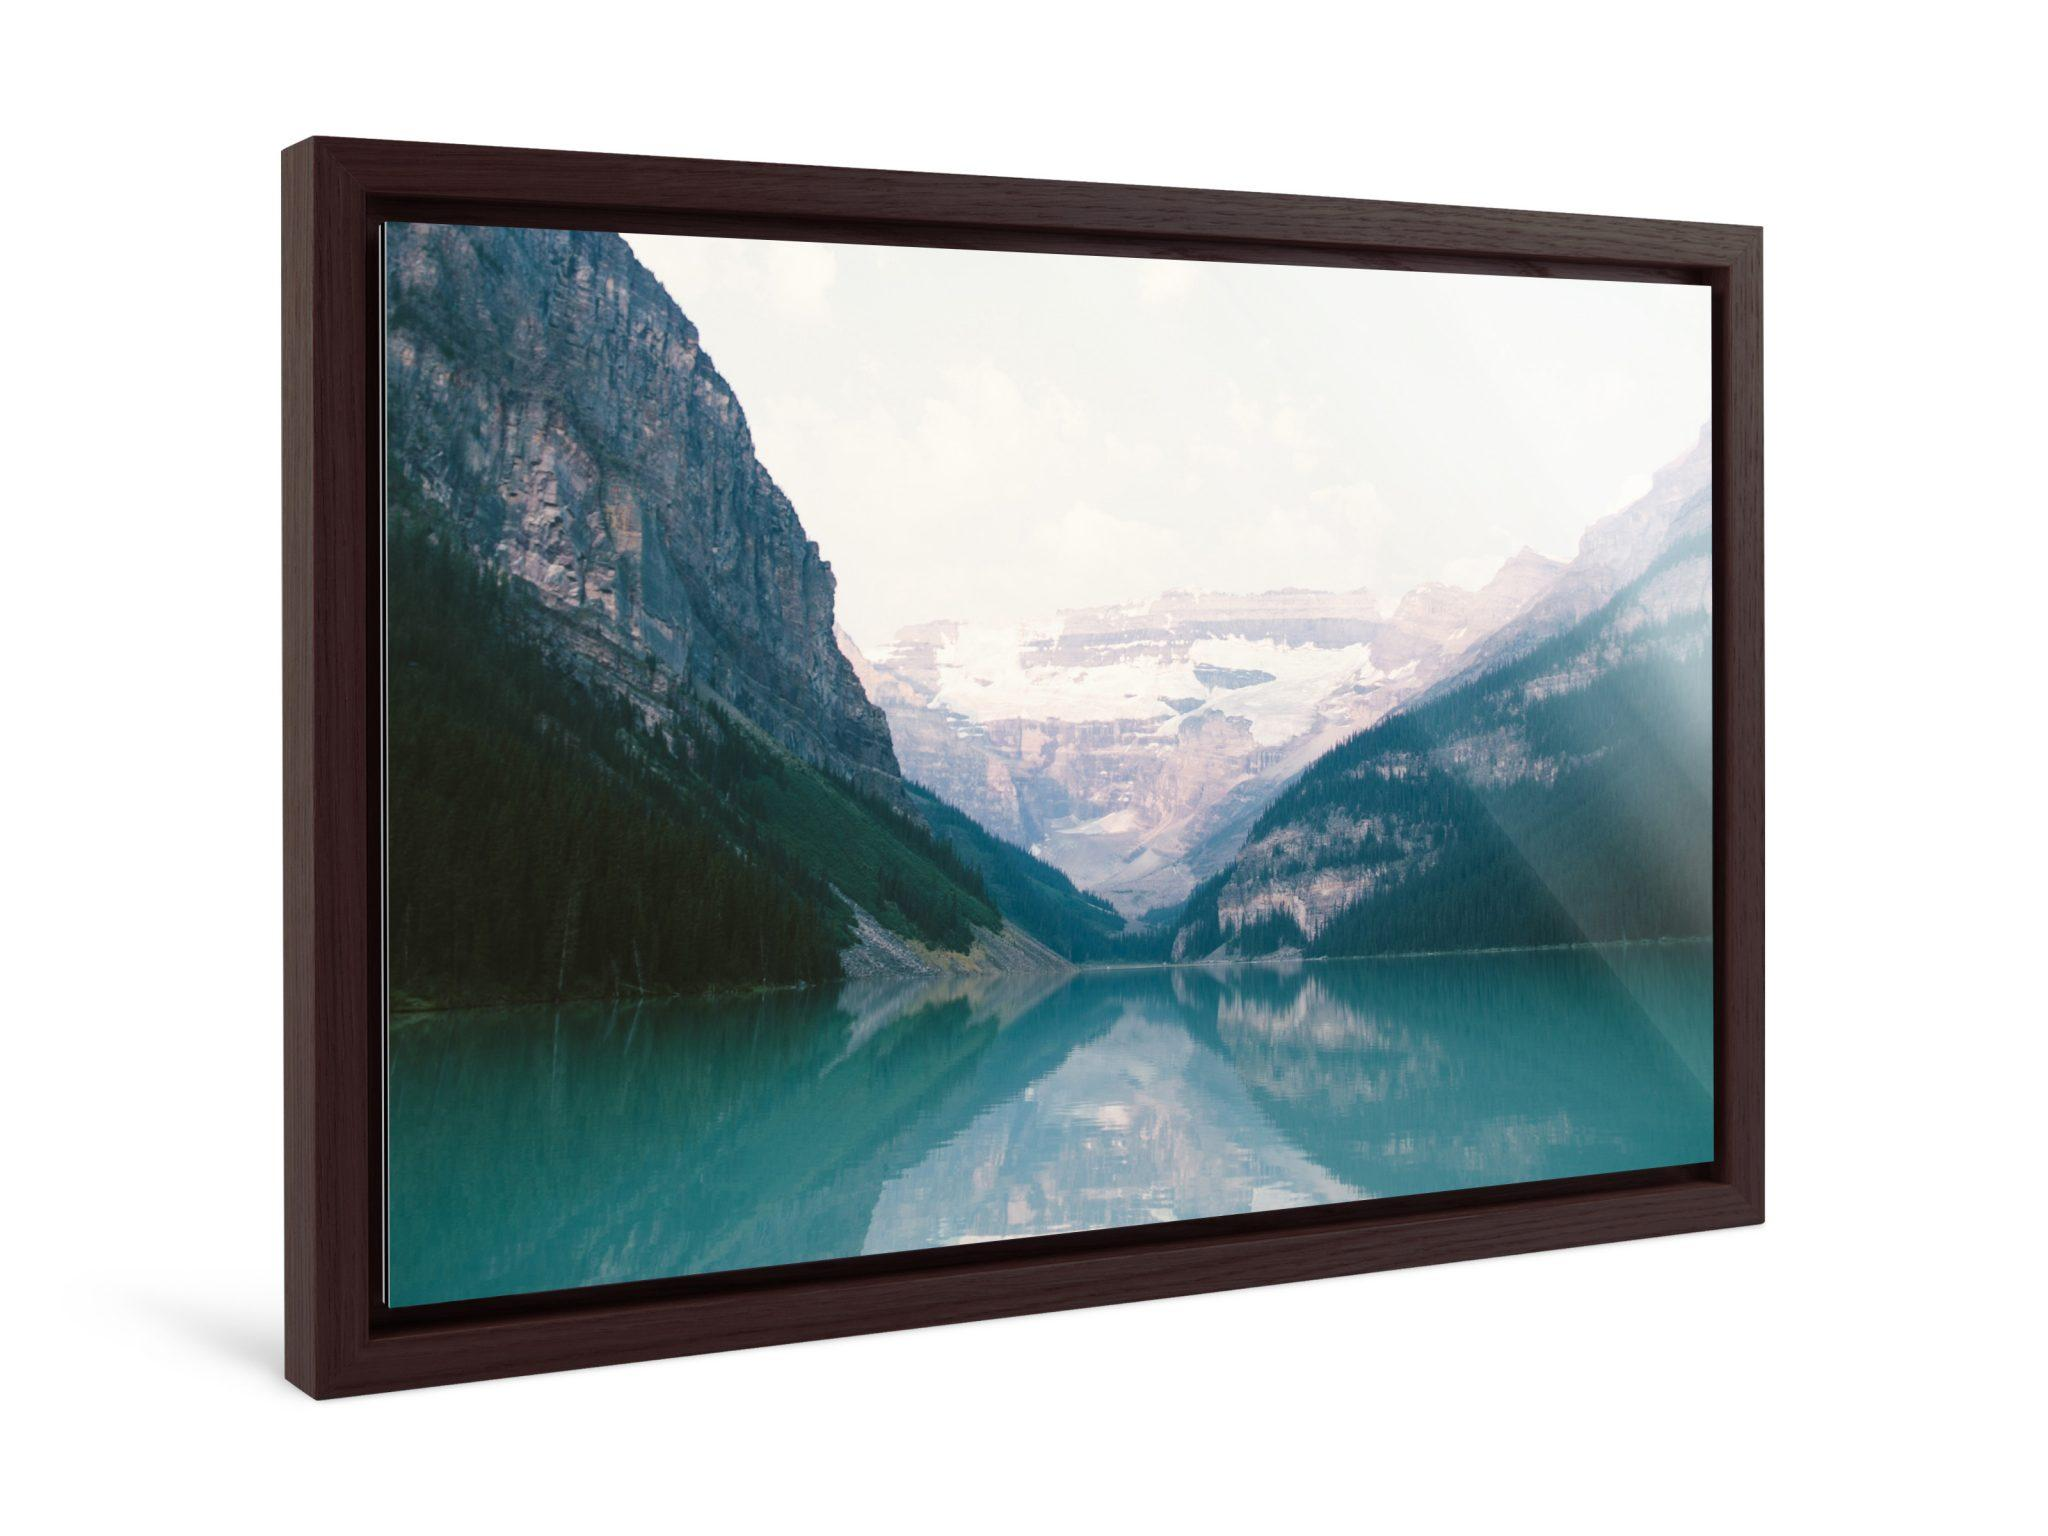 perfect picture in frame